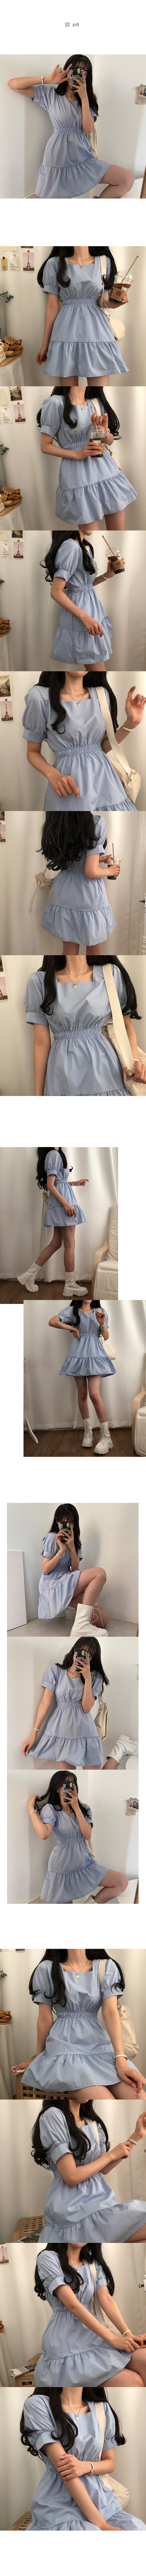 Milky Square Neck Cancan Short Sleeve Mini Dress